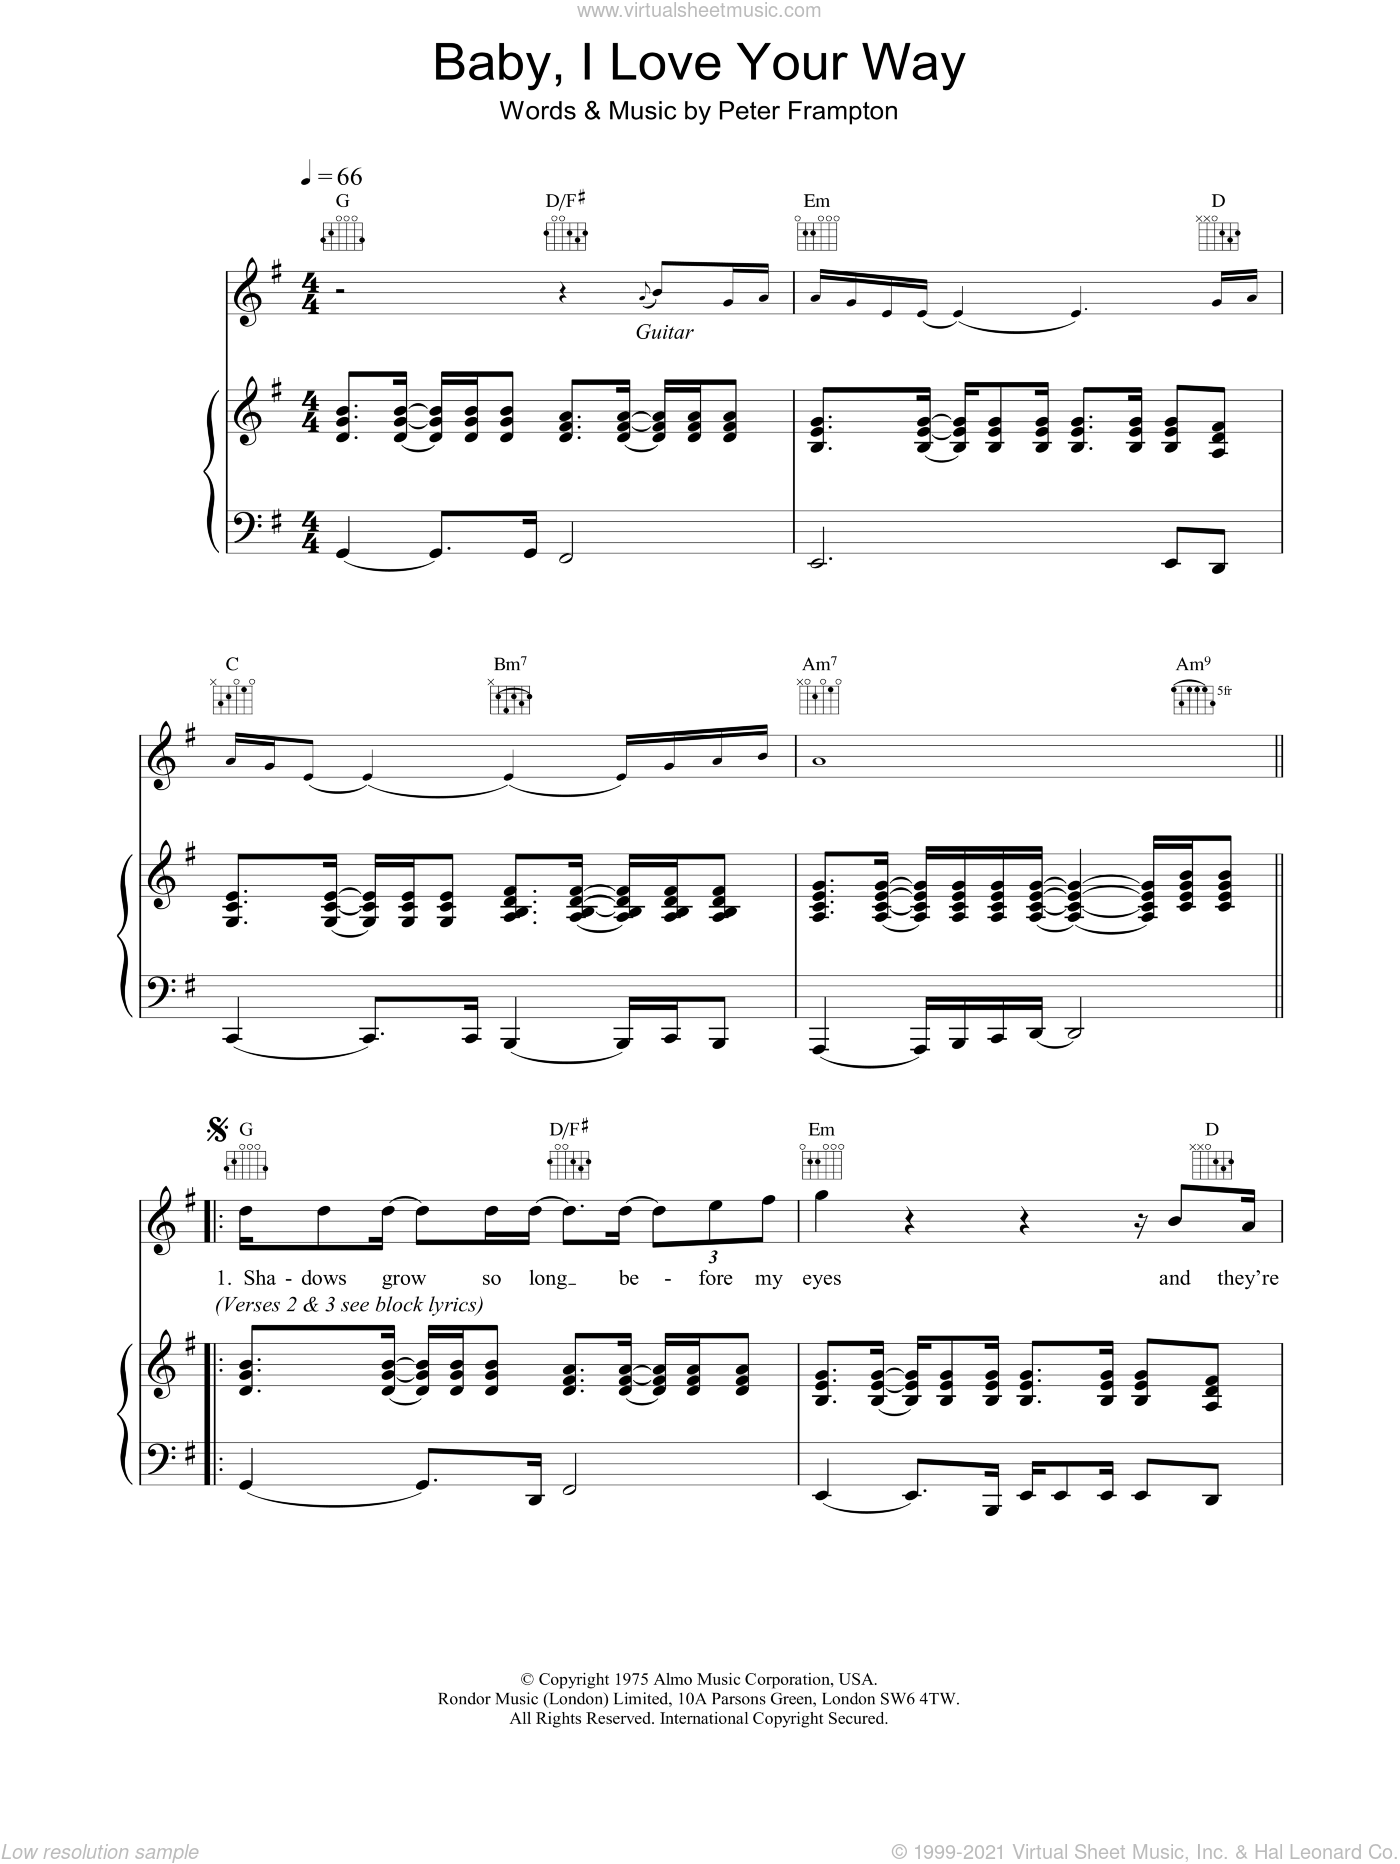 Baby, I Love Your Way sheet music for voice, piano or guitar by Peter Frampton, intermediate skill level